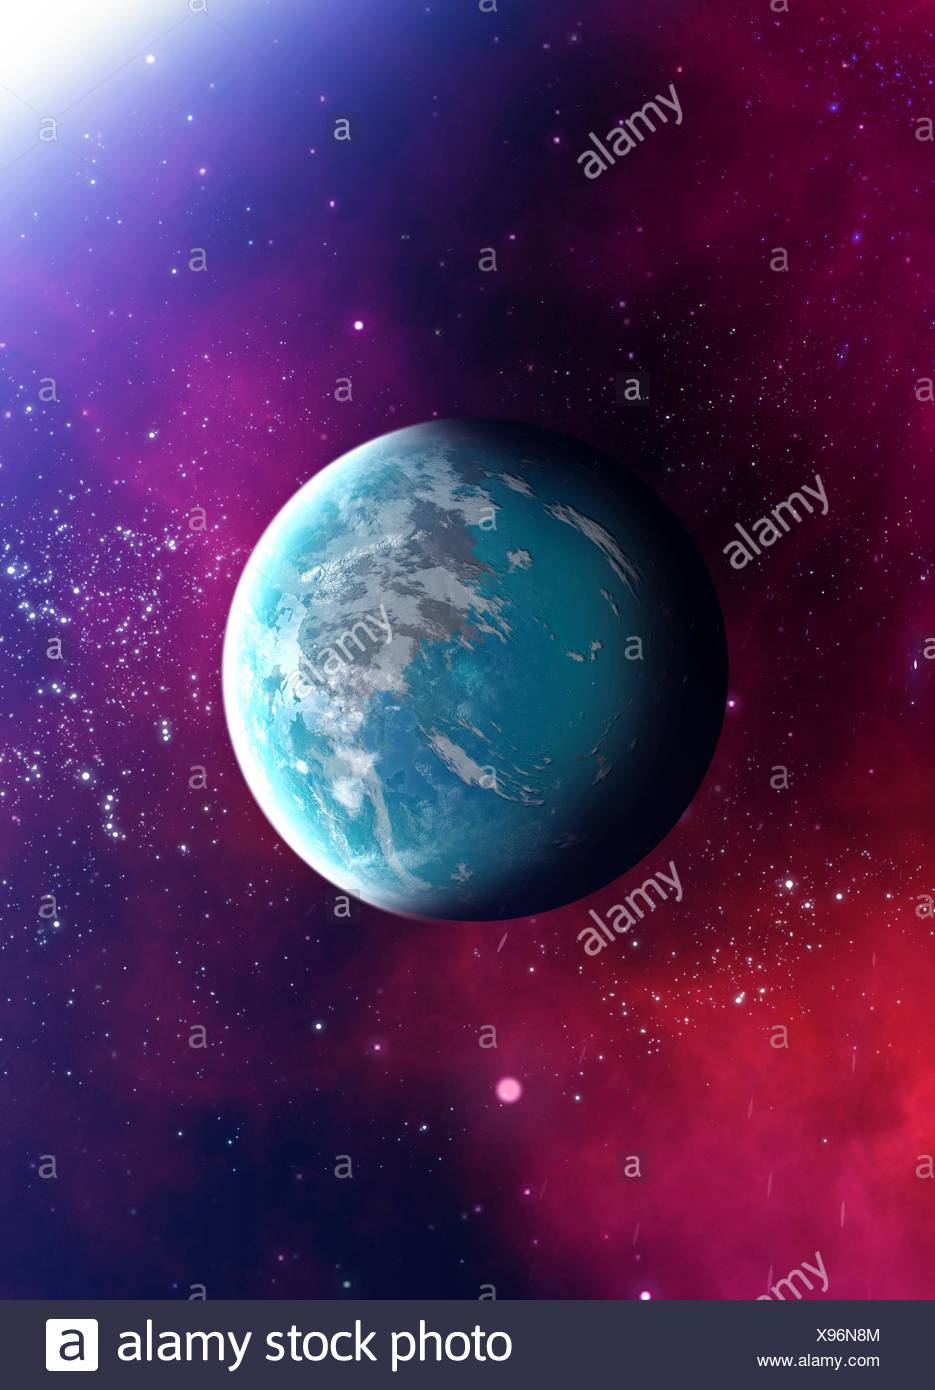 Planet in outer space, illustration. - Stock Image